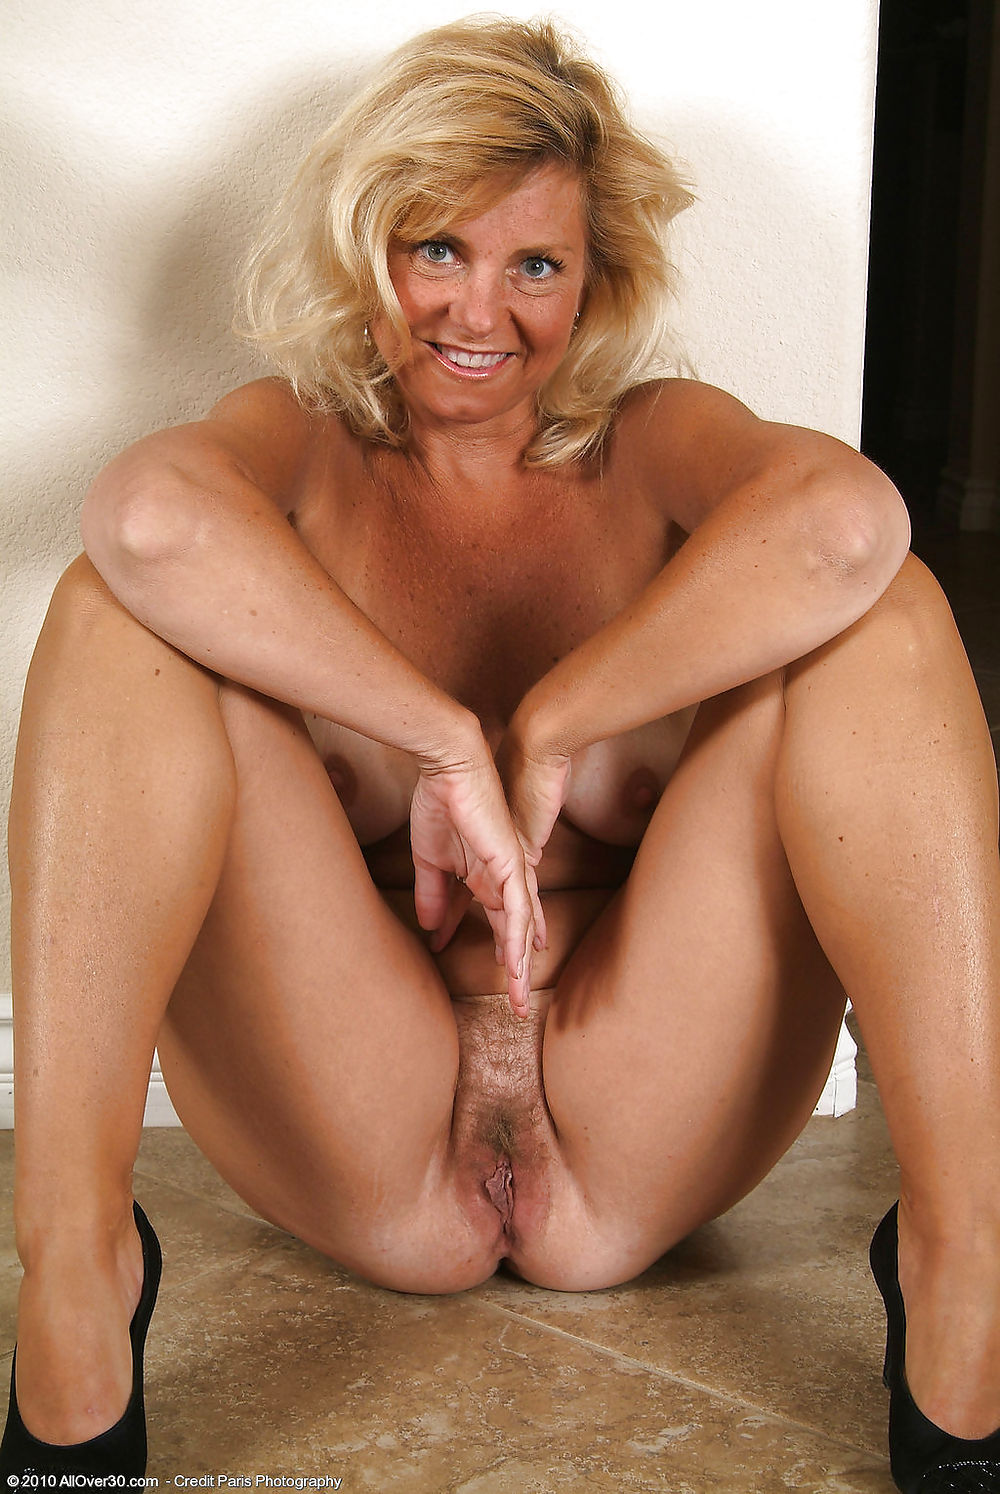 old-hot-naked-woman-videos-pornos-bluper